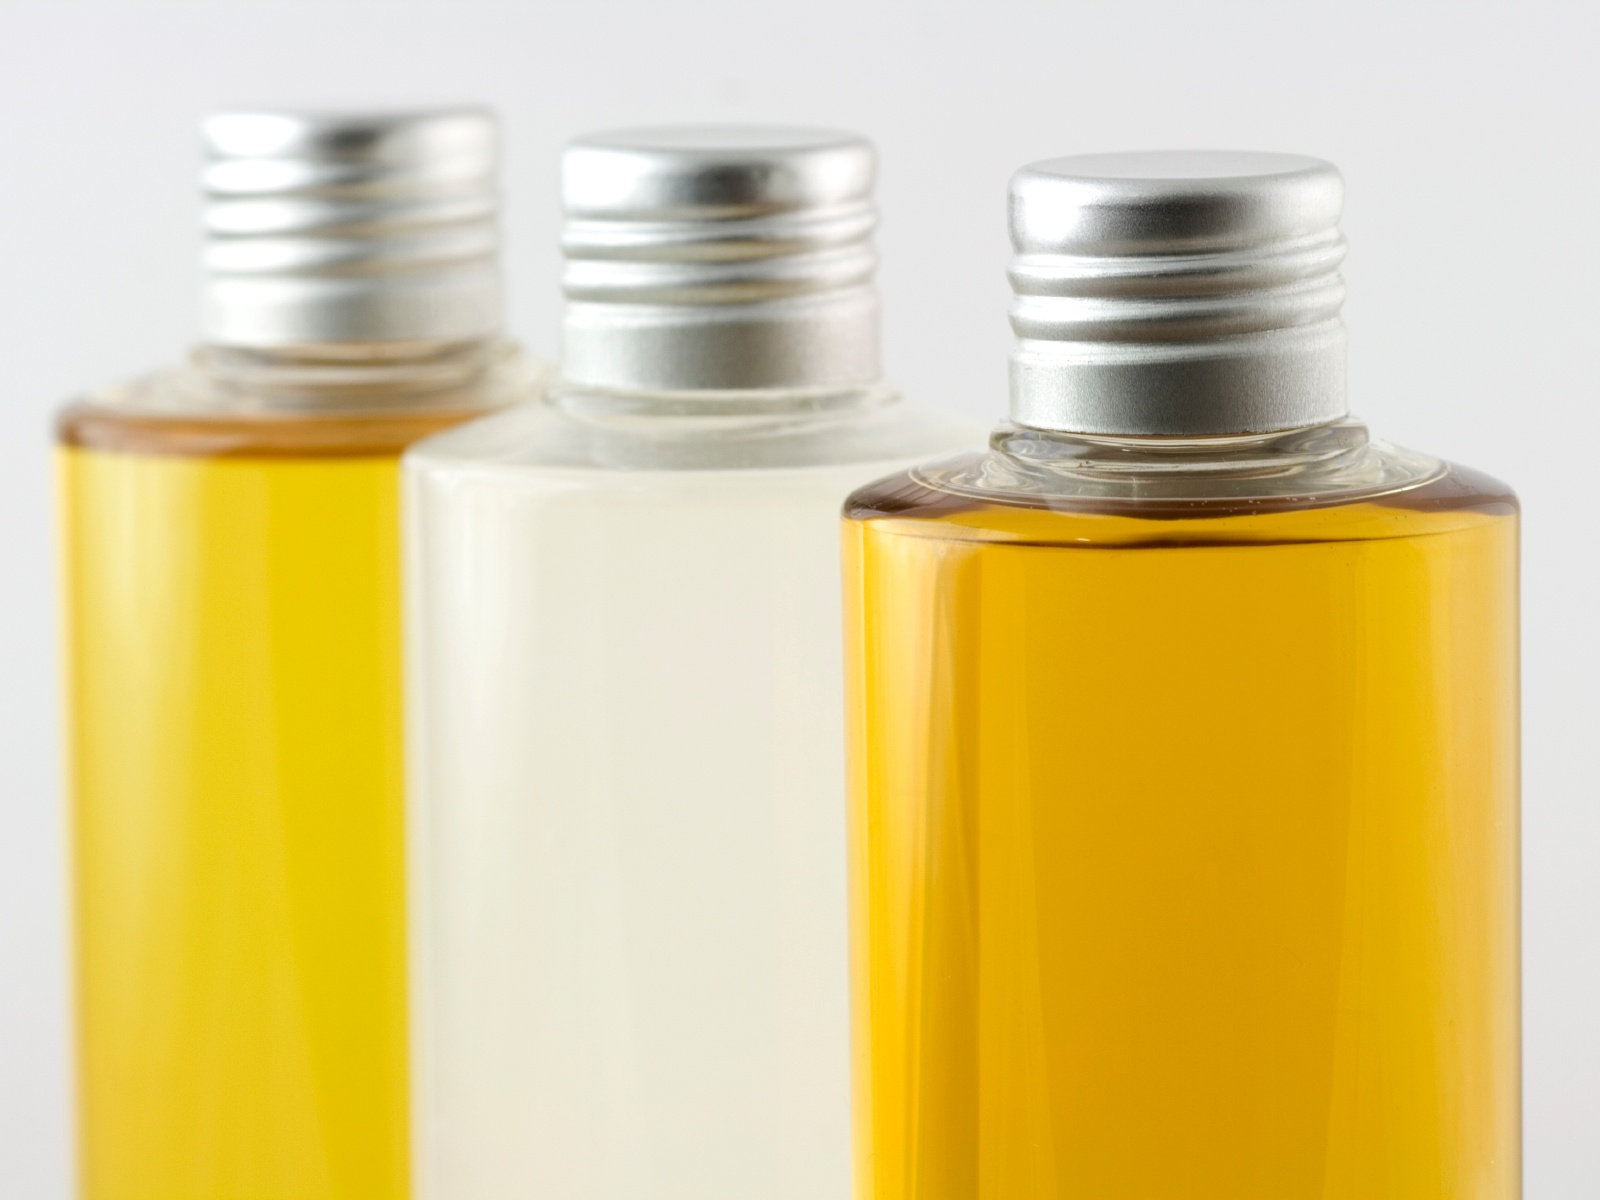 different expeller pressed oils